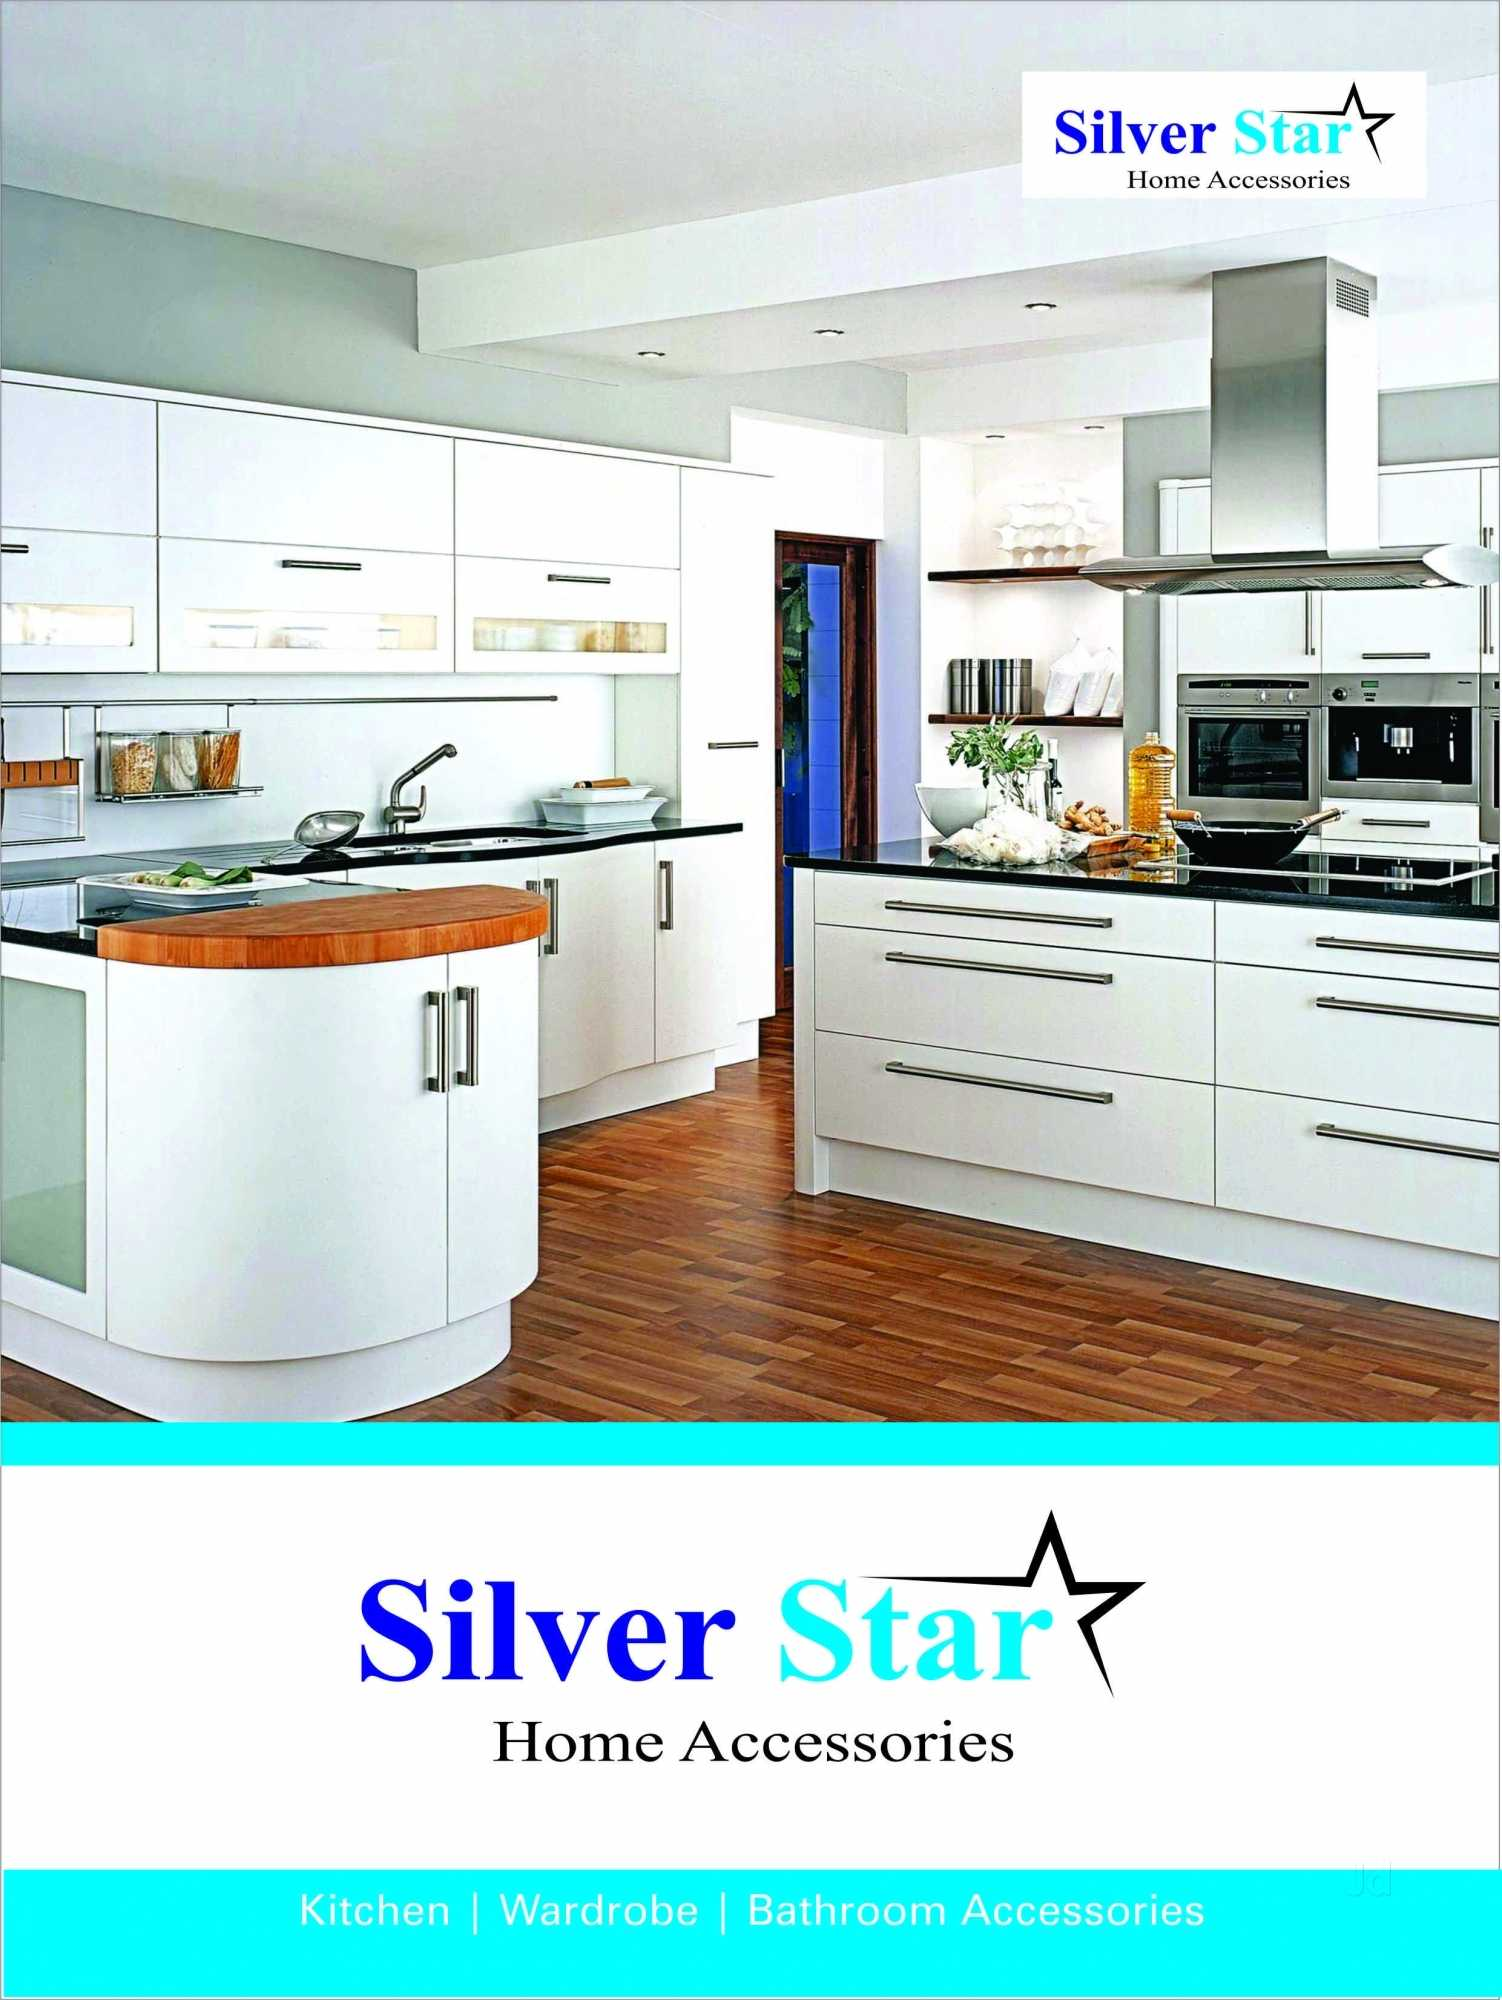 Top 50 Modular Kitchen Accessory Stainless Steel in Wazirpur ...